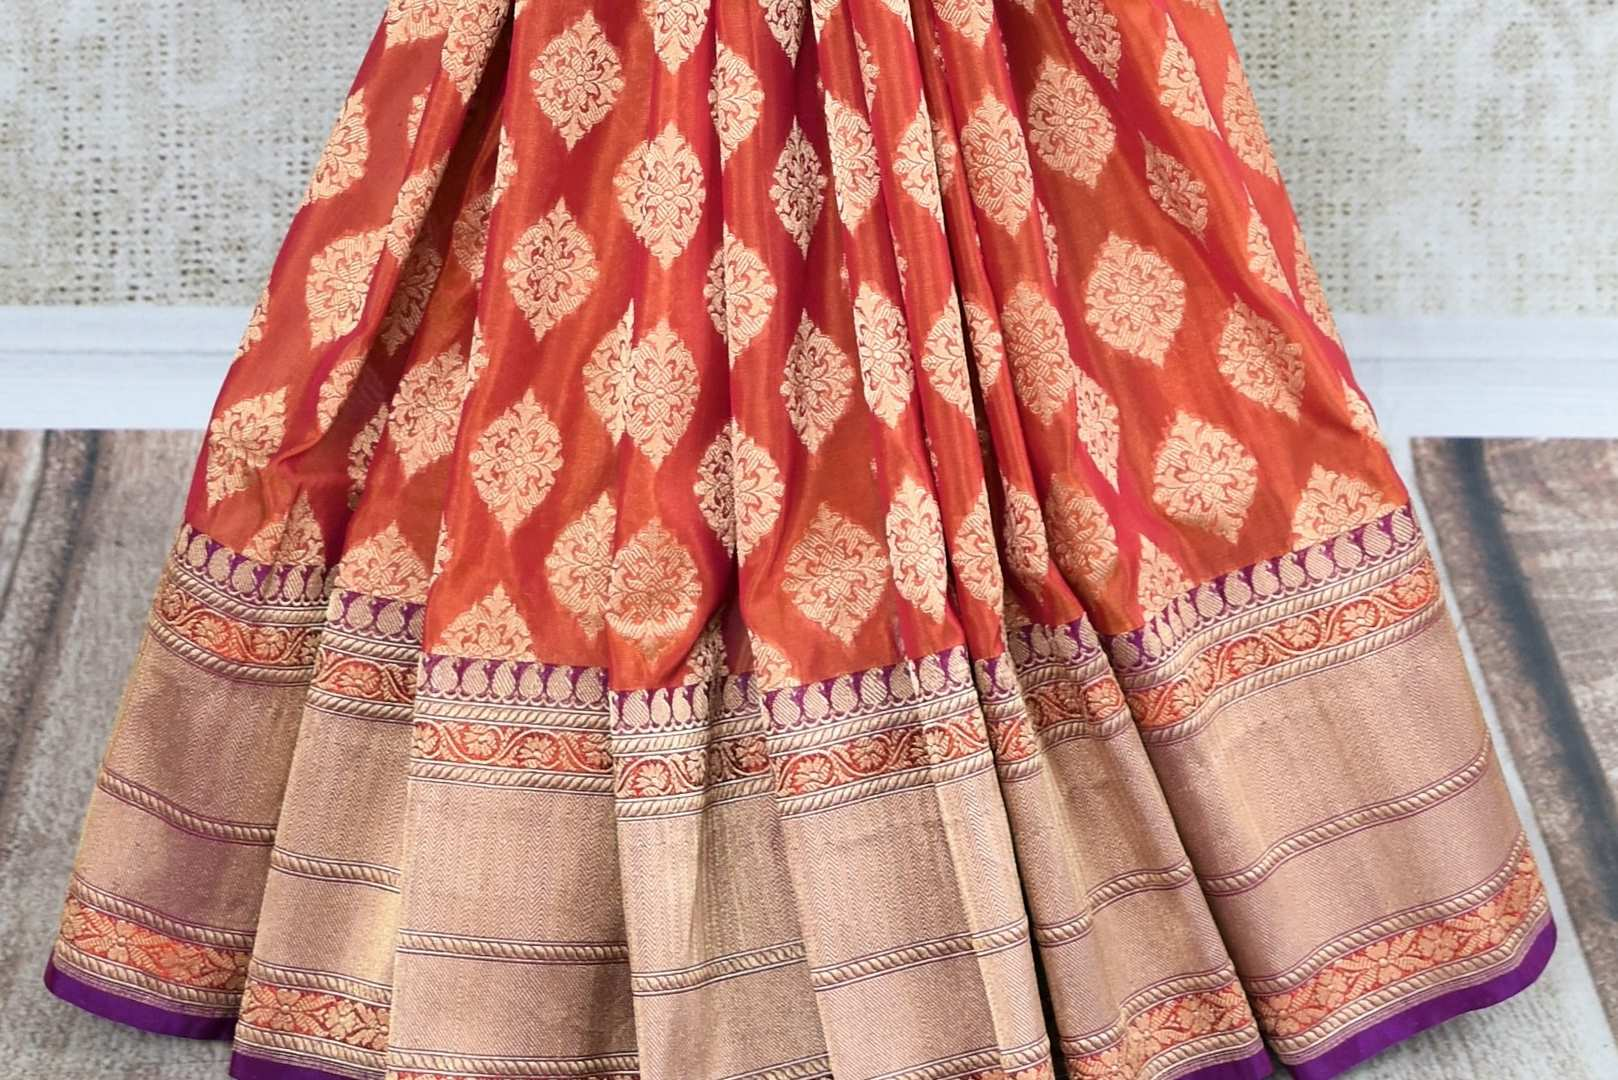 Buy online traditional orange Banarasi silk sari with buta online in USA and purple zari border. The saree is a beautiful drape for an ethnic Indian look at weddings and special occasions. Find more such exquisite Indian silk sarees, handloom sarees in USA at Pure Elegance Indian fashion store. Shop now.-pleats